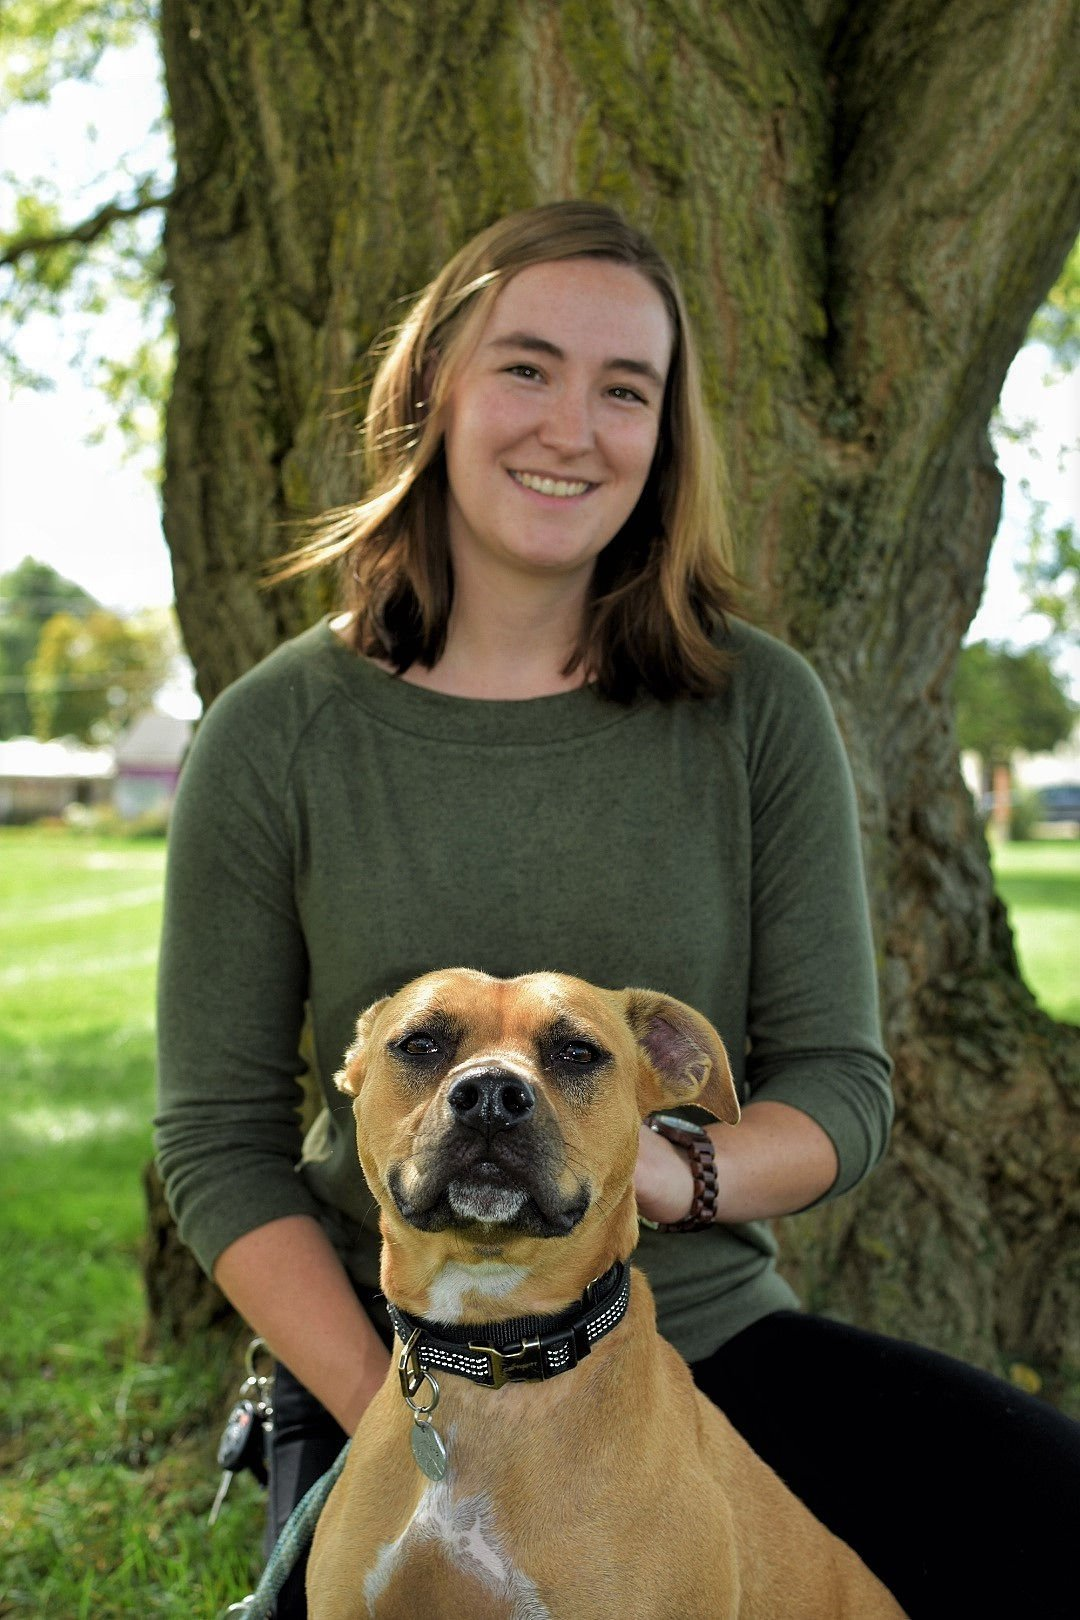 Kennedy A., Veterinary Assistant